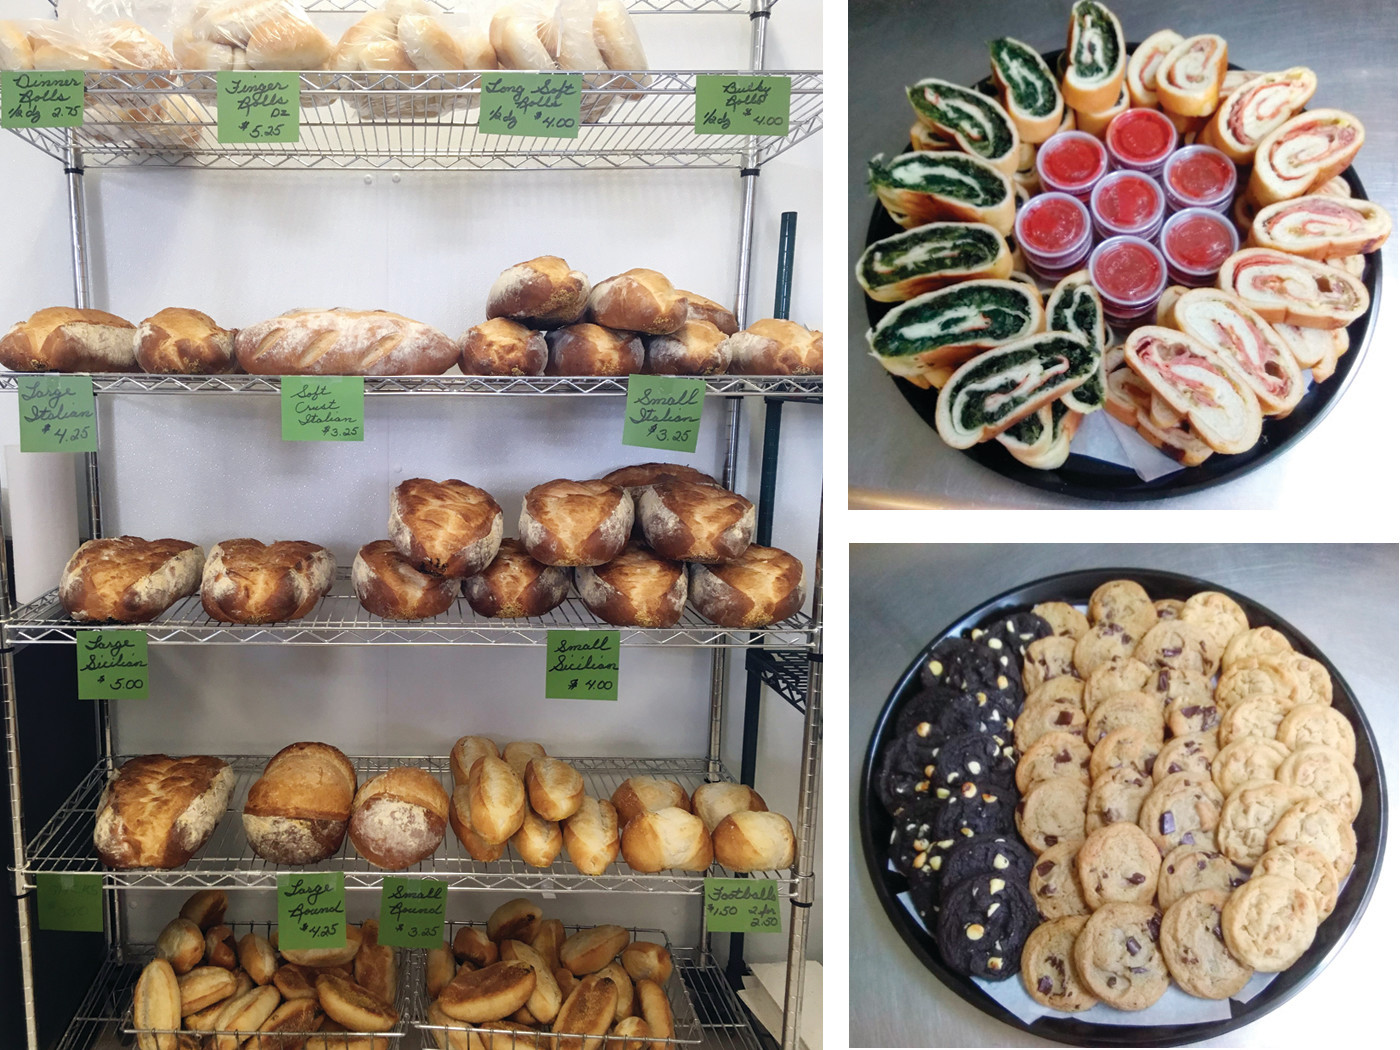 Come load up on loaves of homemade bread or order your party platter of calzones or cookies  from Juliana's Italian Bakery ~ just in time for football and back-to-school season! Call 401-771-8934 to ask about the seasonal discounts!